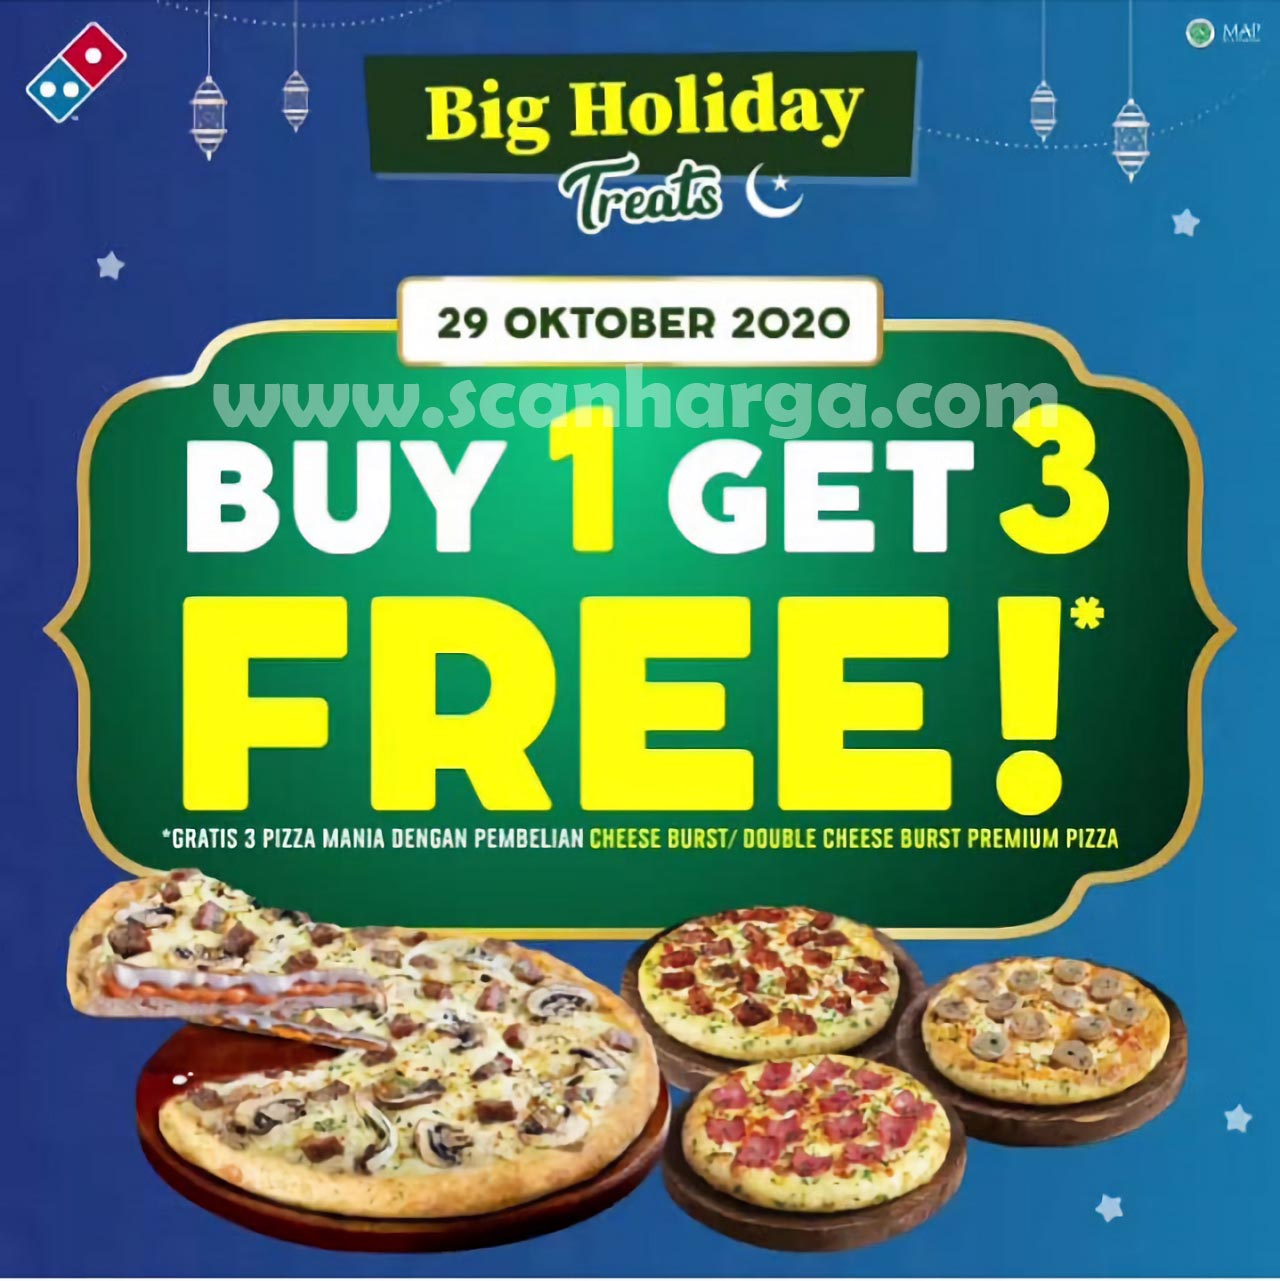 Dominos Pizza Big Holiday Treats Promo [Maulid Nabi] Beli 1 Gratis 3 Pizza Mania*